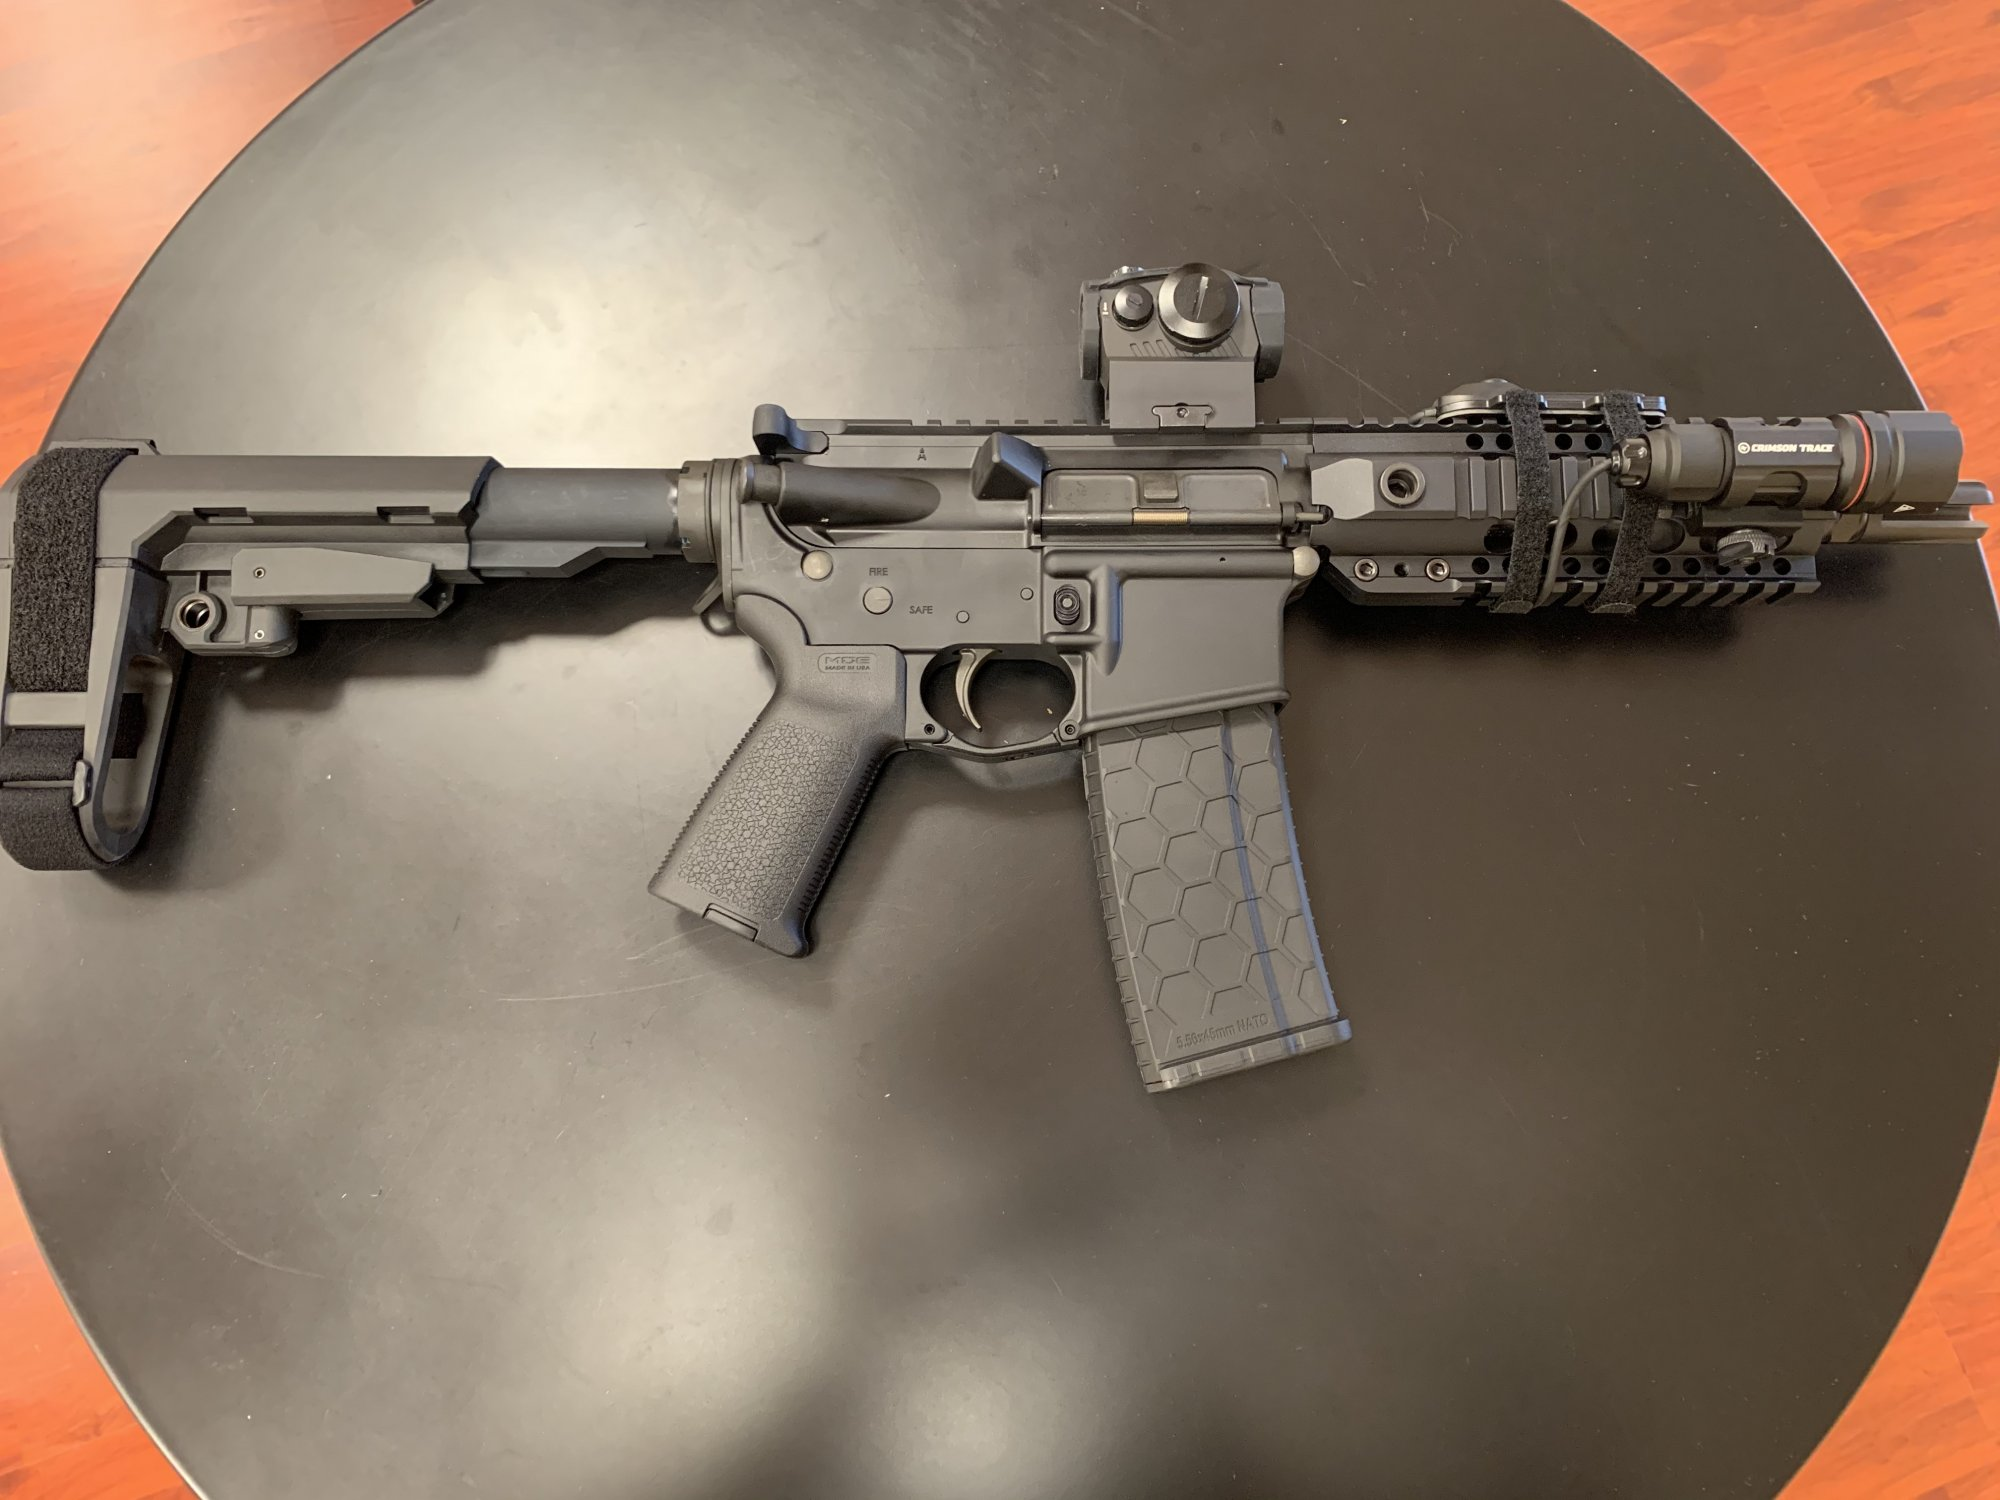 Bushmaster XM-15 AR15 Pistol (7.5in barrel)